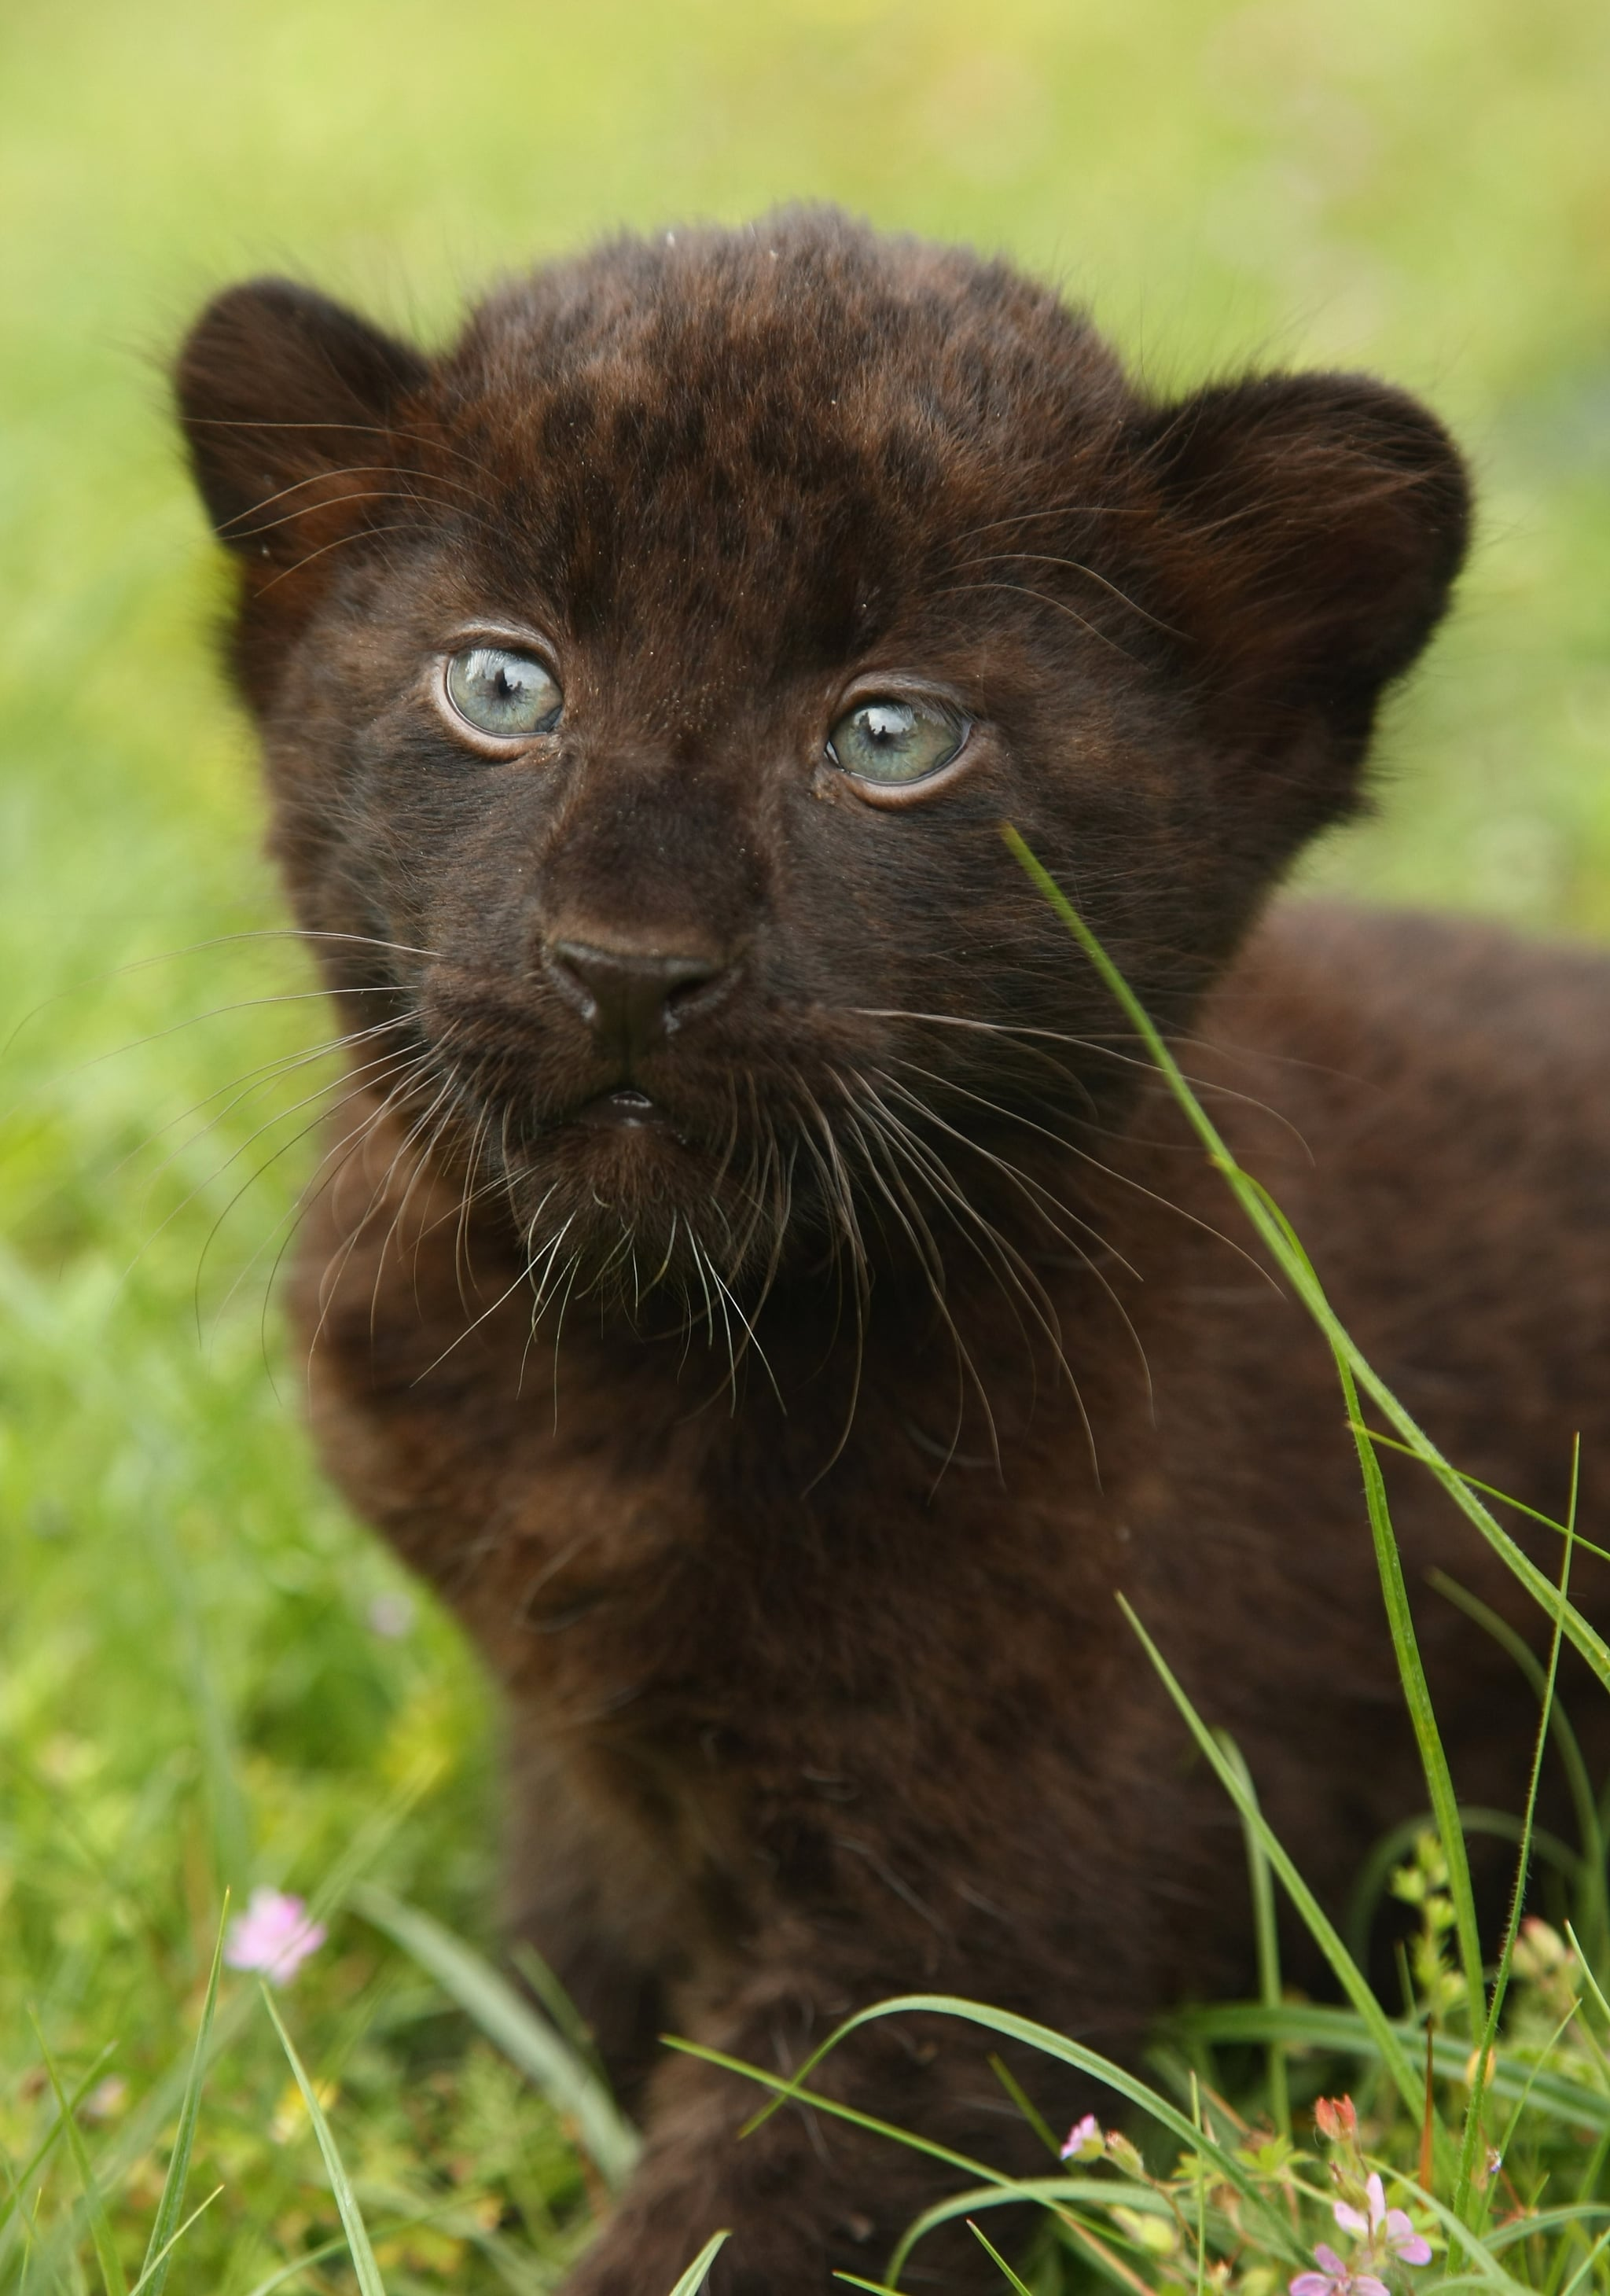 Baby panther cubs - photo#54